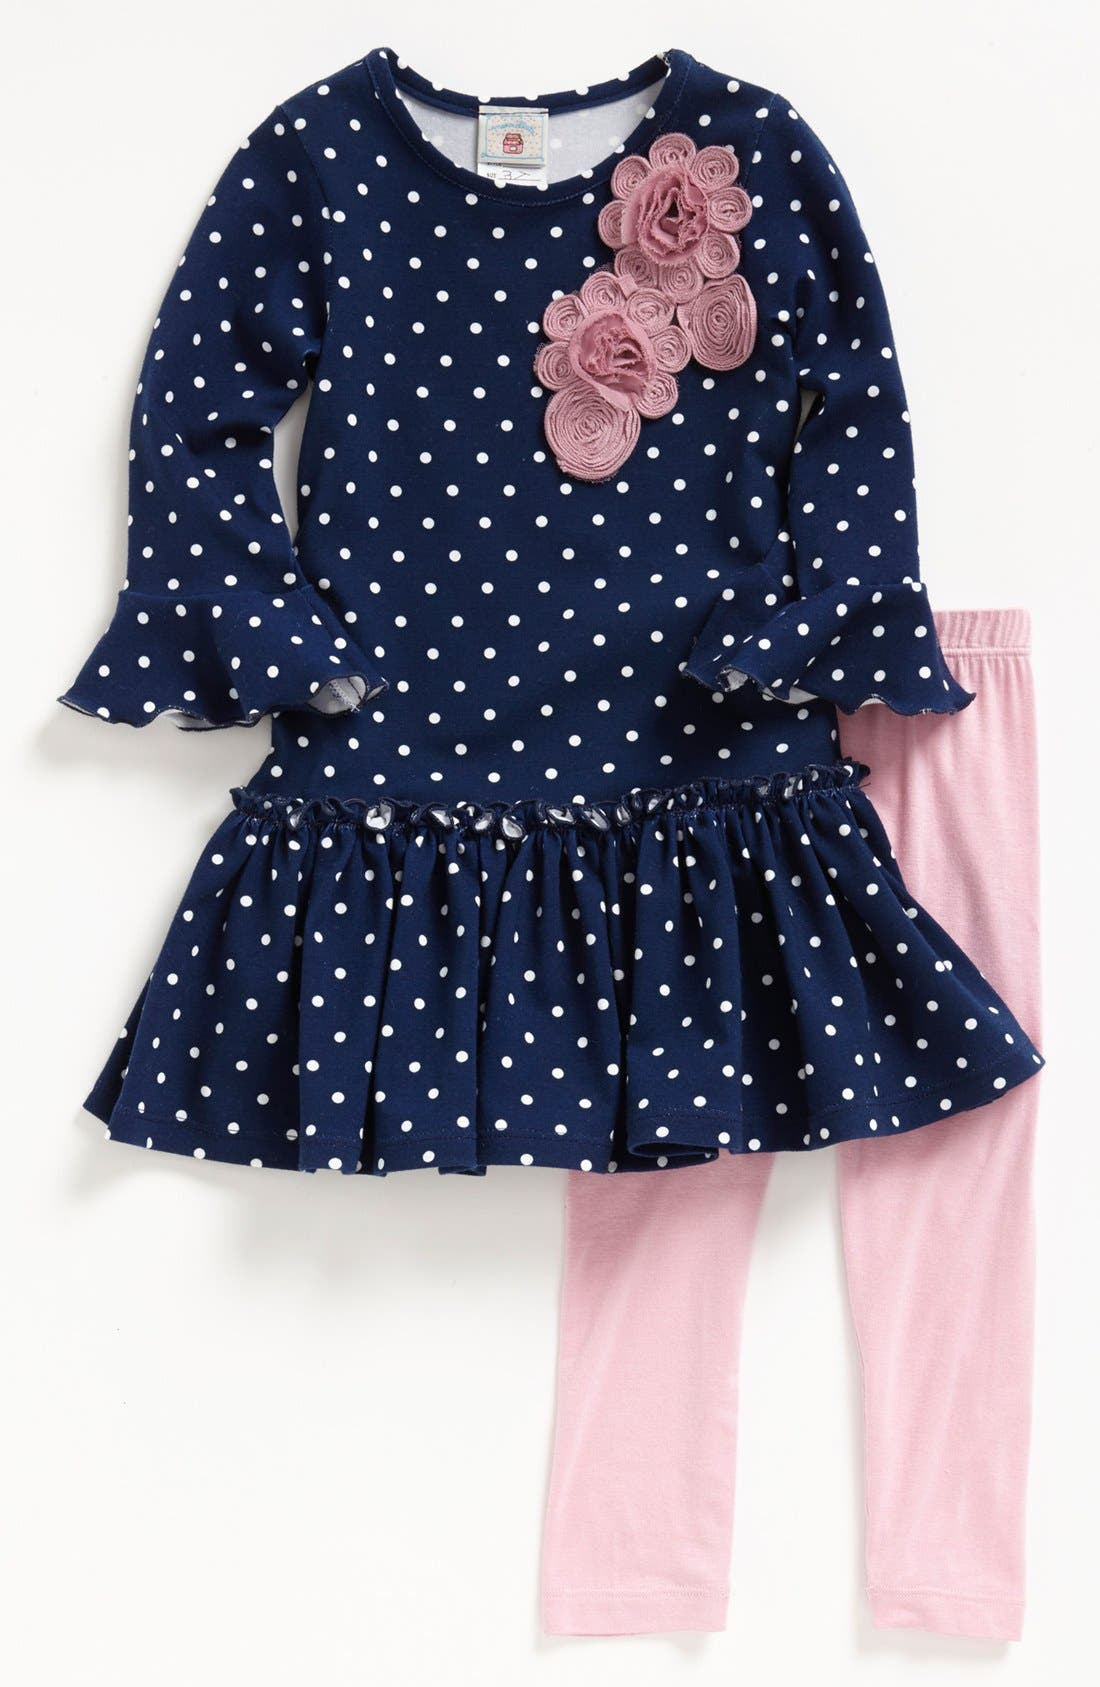 Main Image - Pippa & Julie Polka Dot Tunic & Leggings (Toddler Girls)